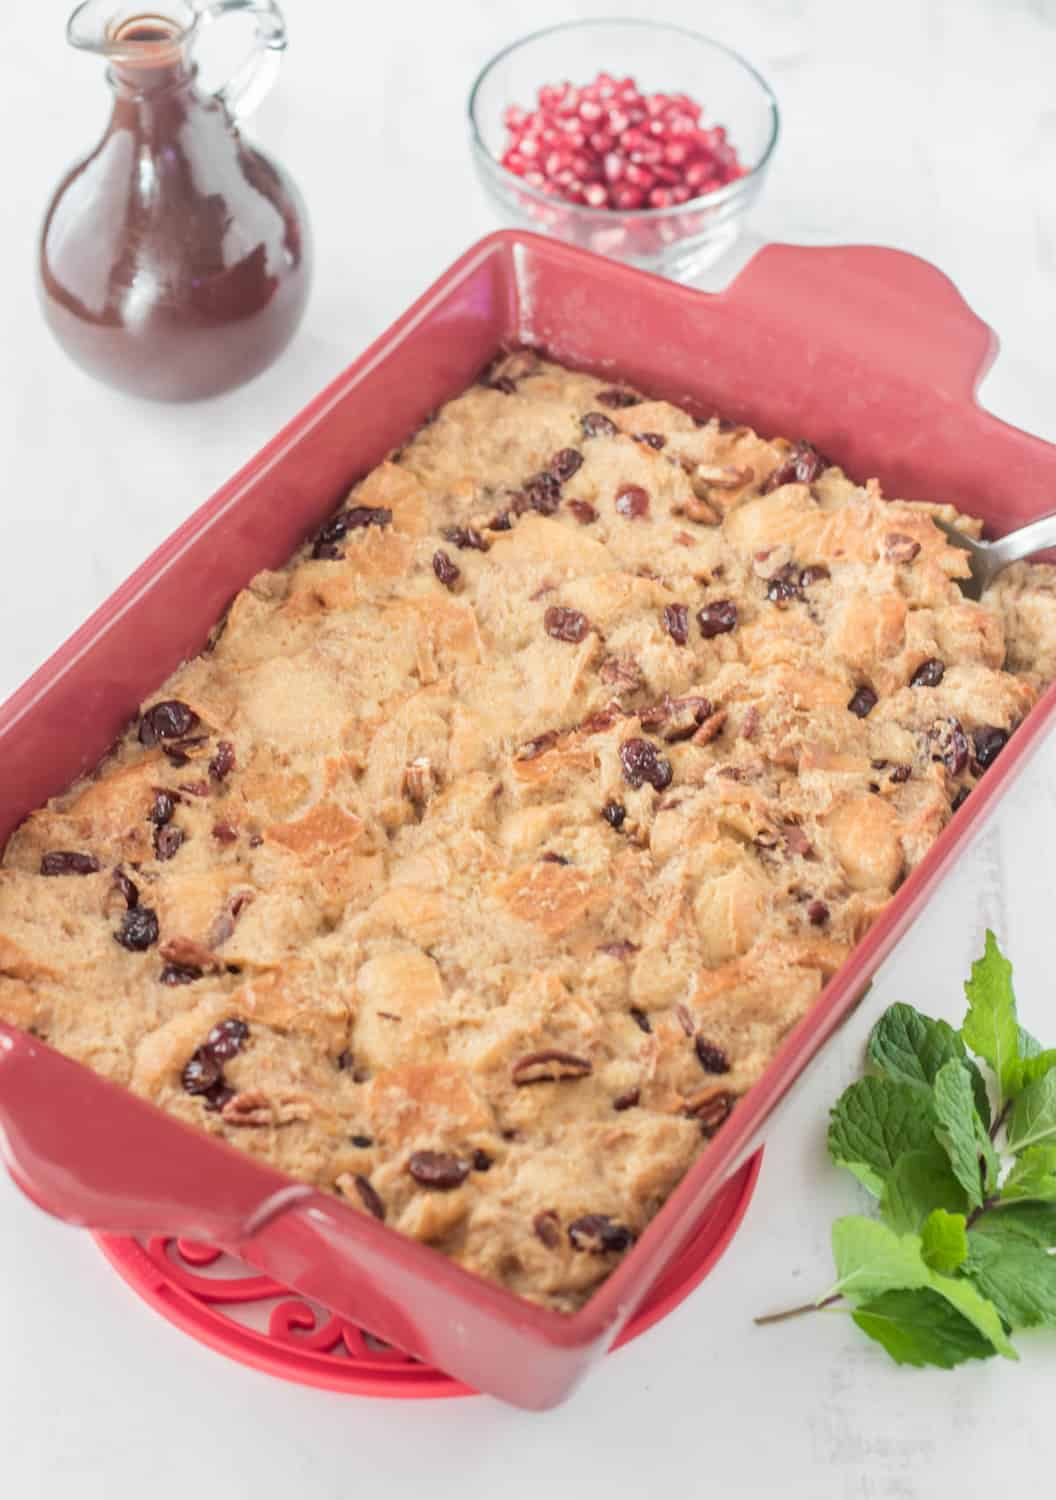 A red baking dish with the fully-cooked bread pudding alongside the  Mexican chocolate sauce and a mint sprig.